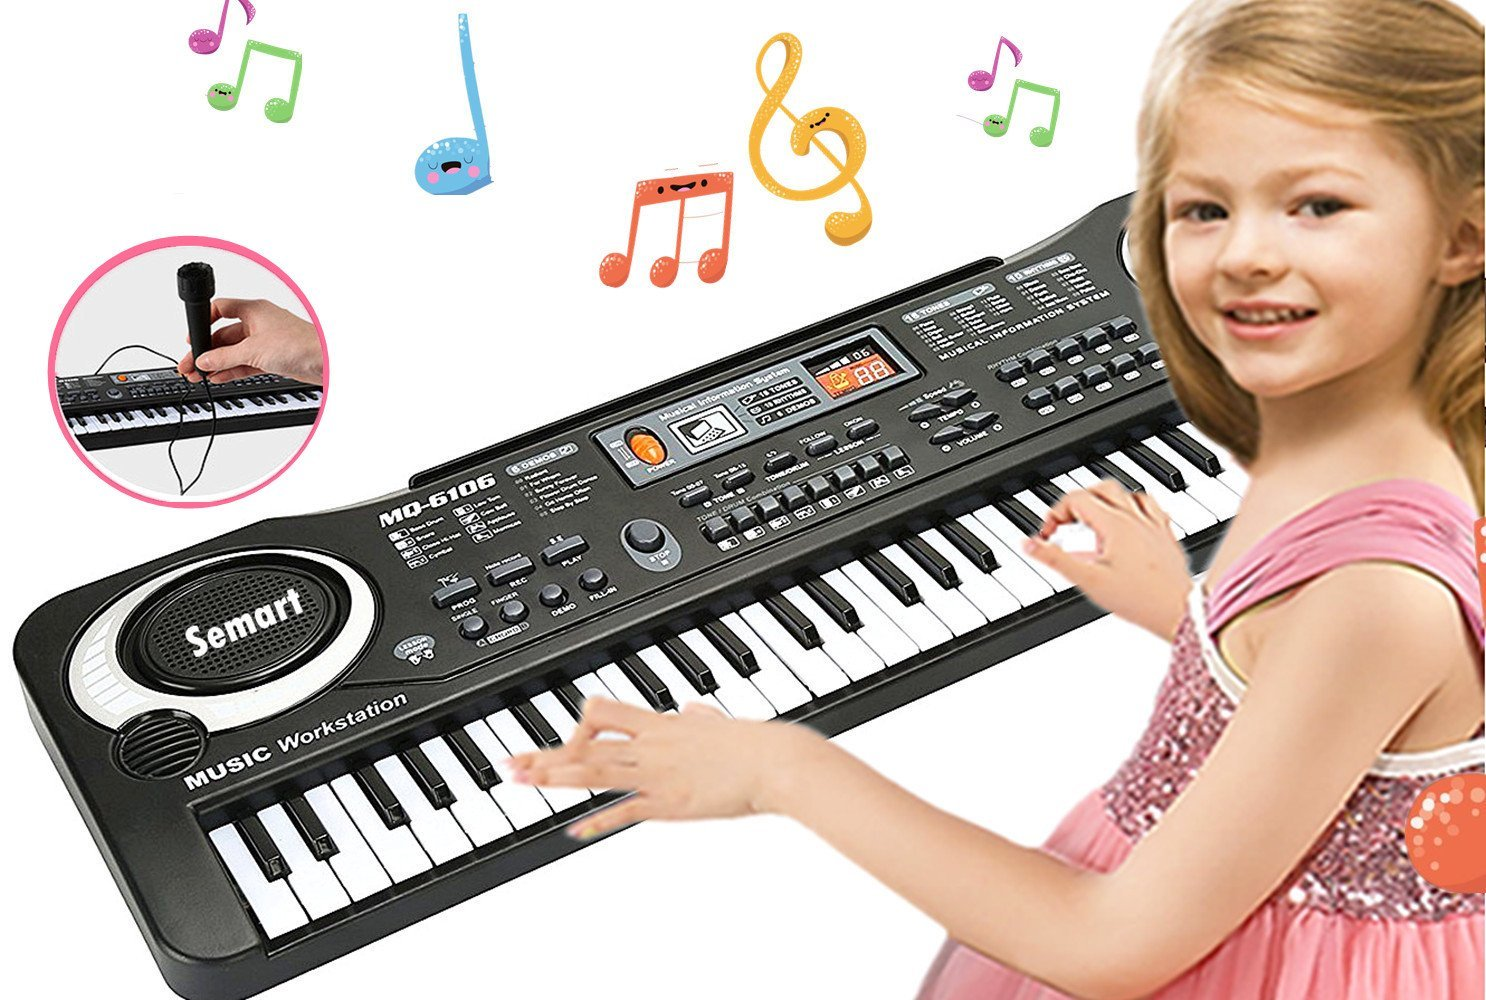 SEMART Piano Keyboard Music Piano Electric Keyboards for kids Musical Instrument USB multi-function